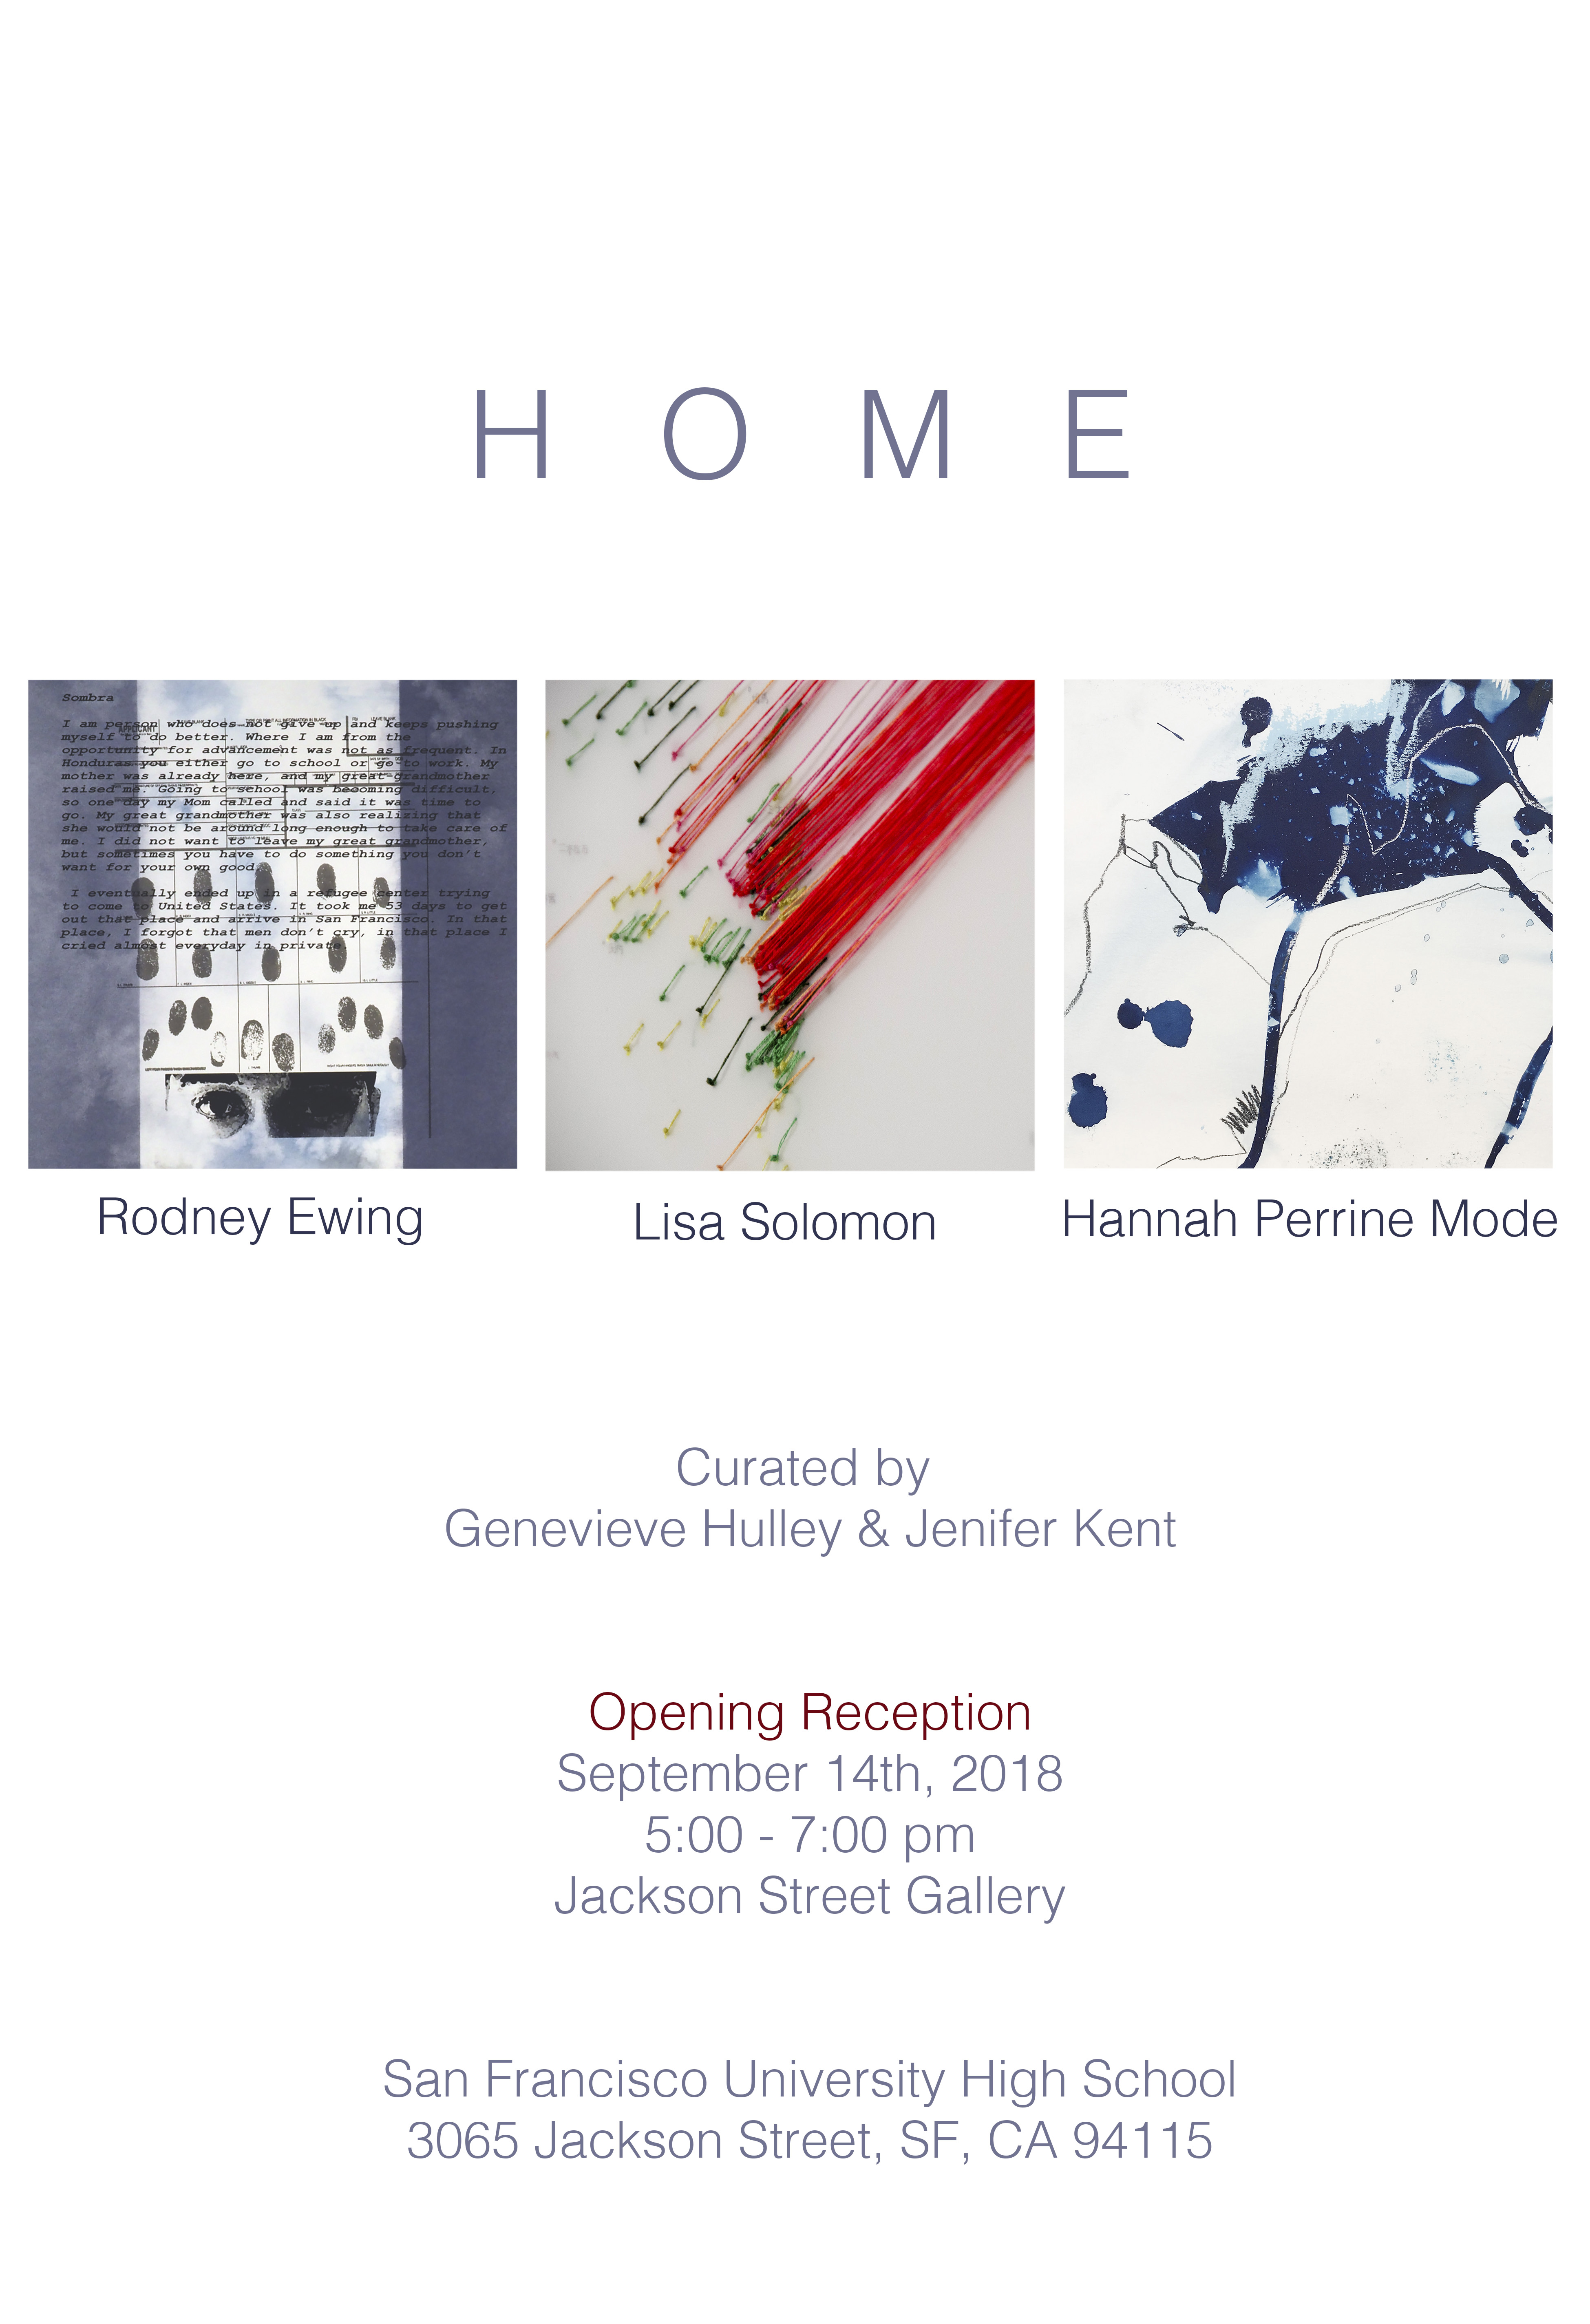 Jackson Street Gallery Exhibition Opening Reception: September 14